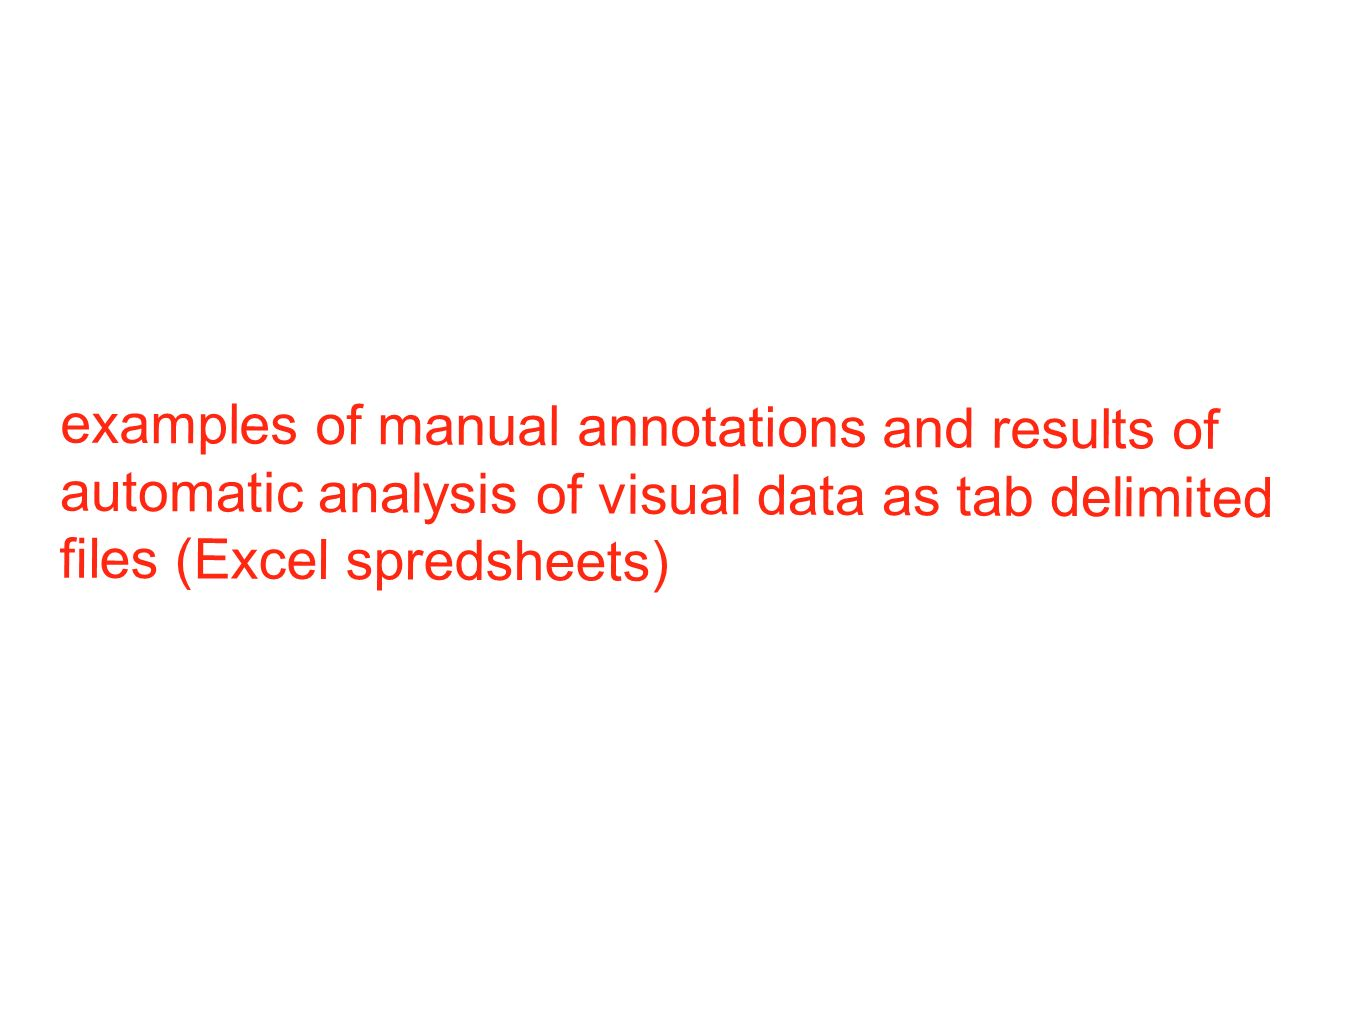 examples of manual annotations and results of automatic analysis of visual data as tab delimited files (Excel spredsheets)